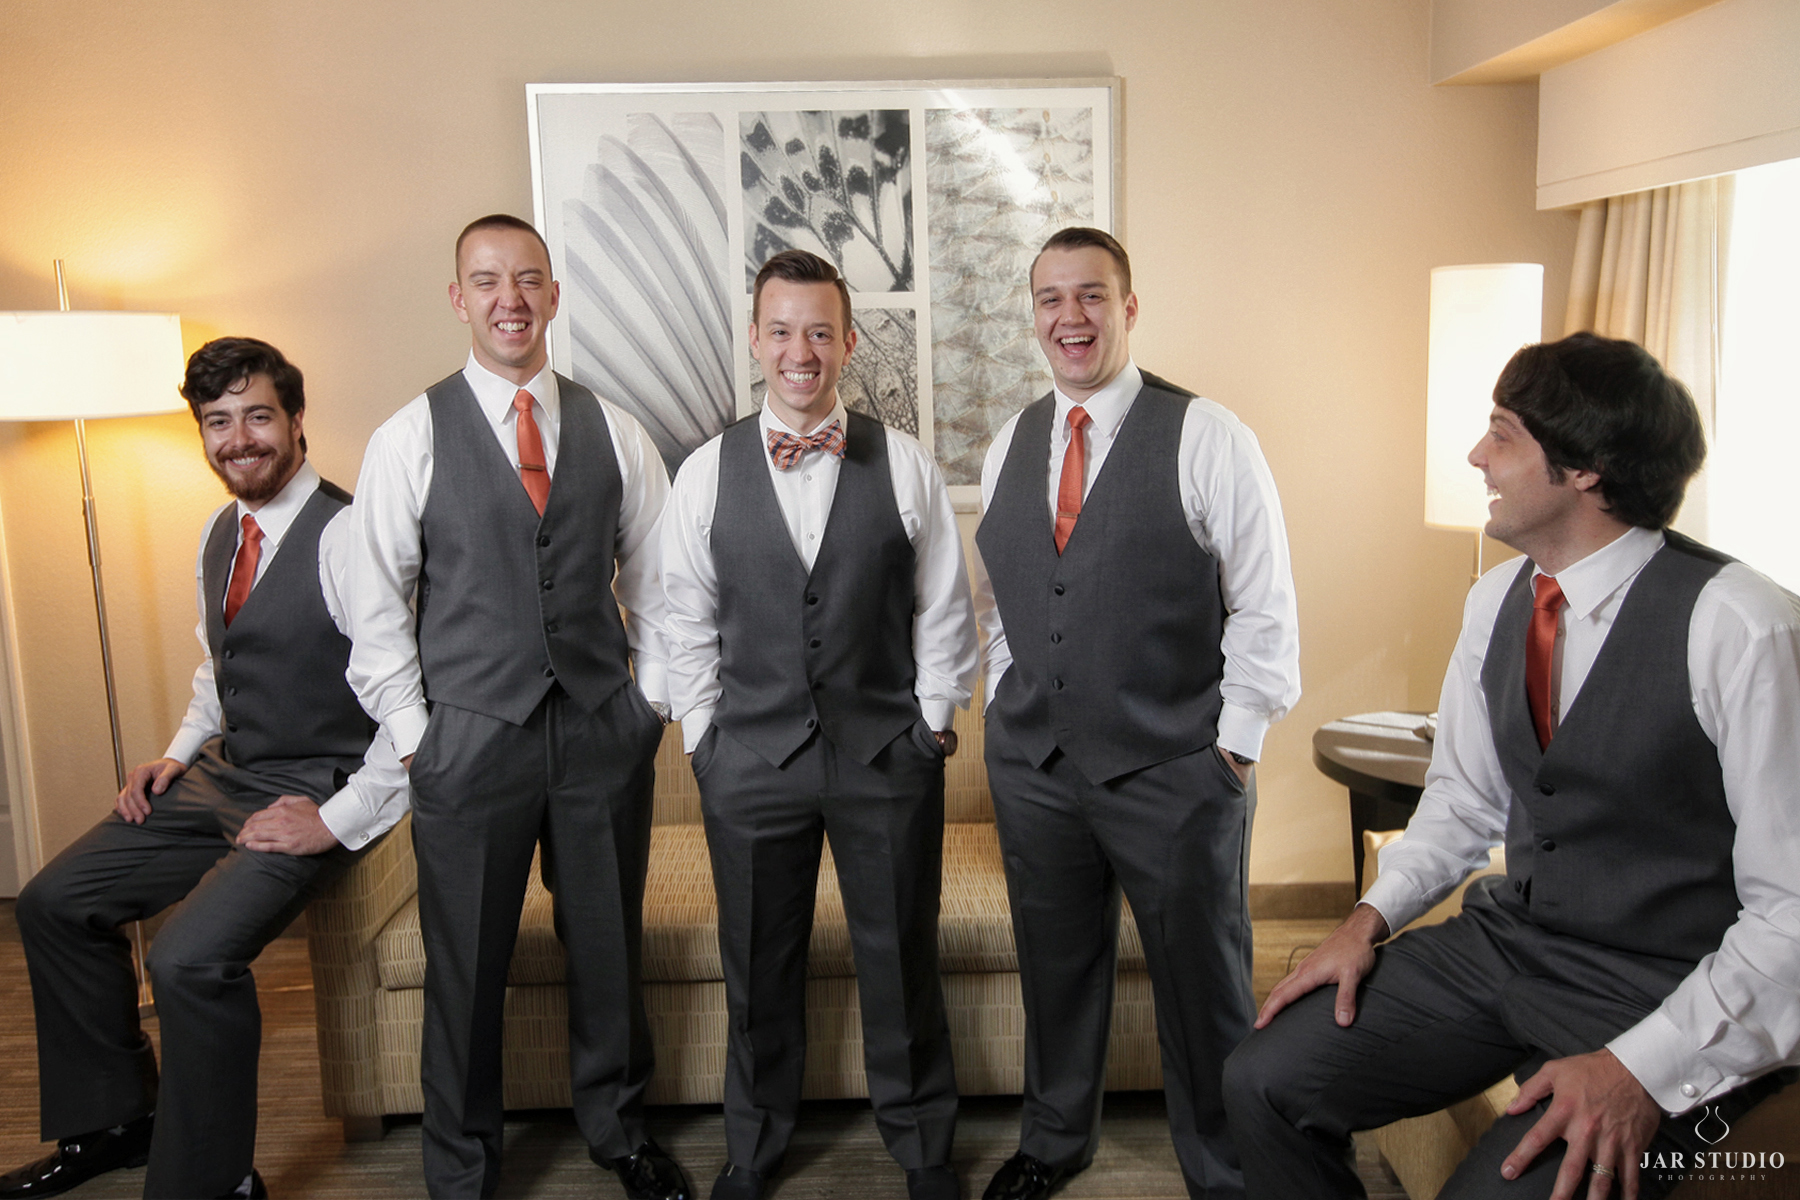 10-gray-orange-brown-groomsmen-details-fun-photographer-jarstudio.JPG